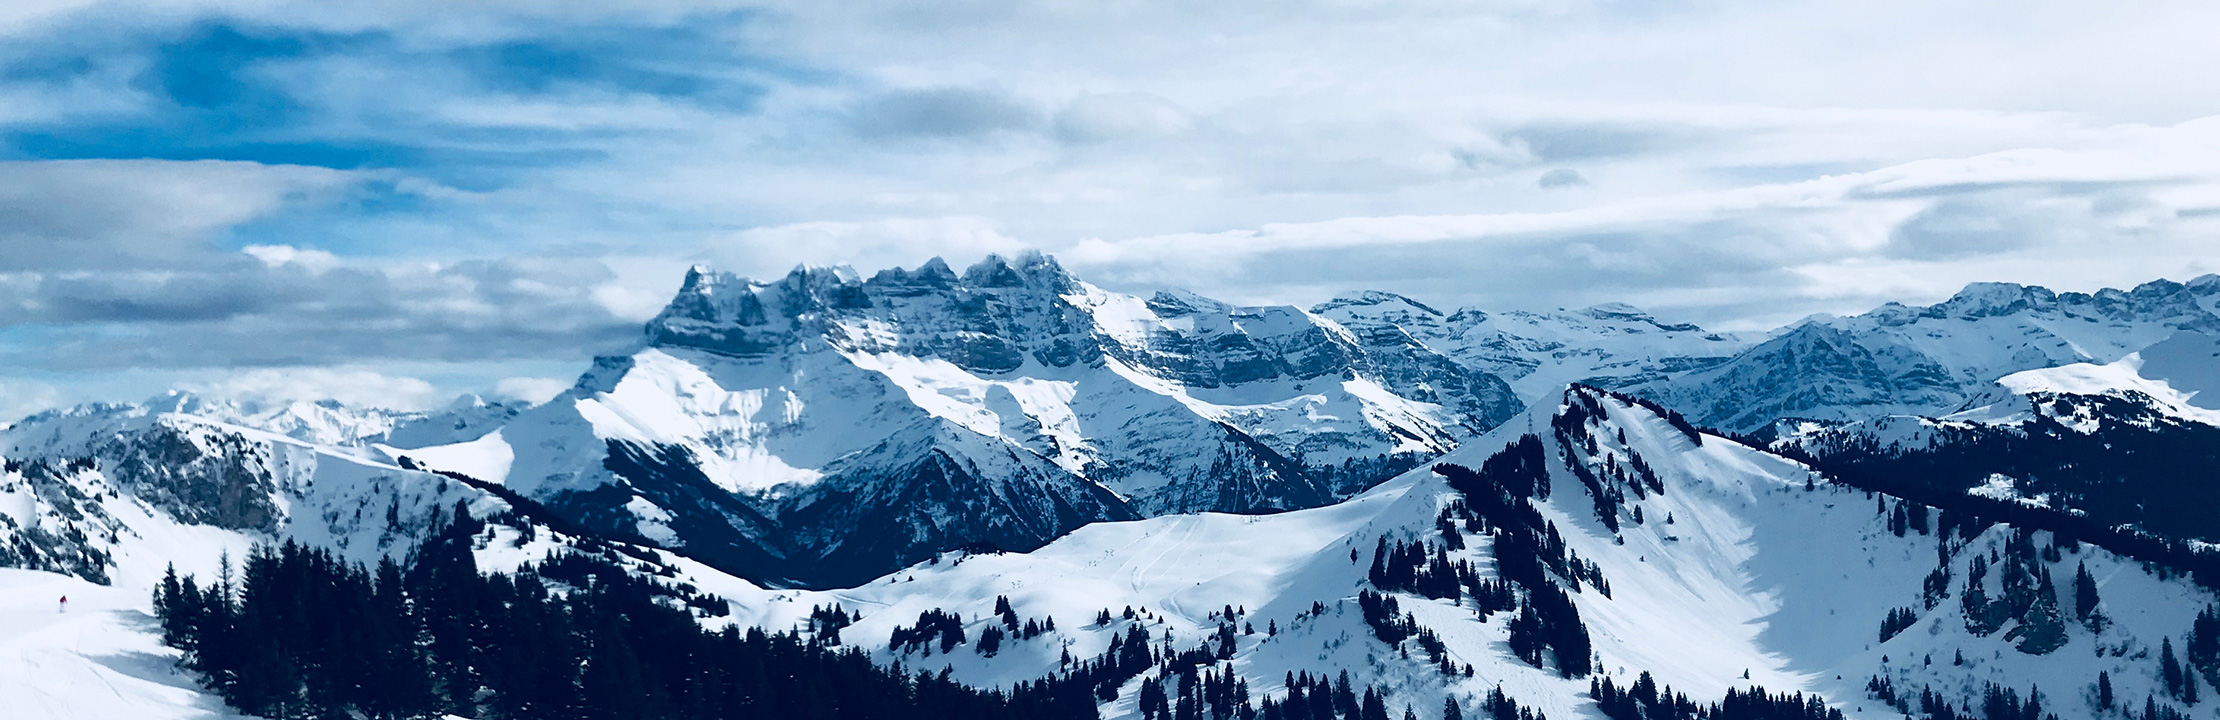 photo des montagnes les dents du midi enneigées illustrant une citation de CapRol